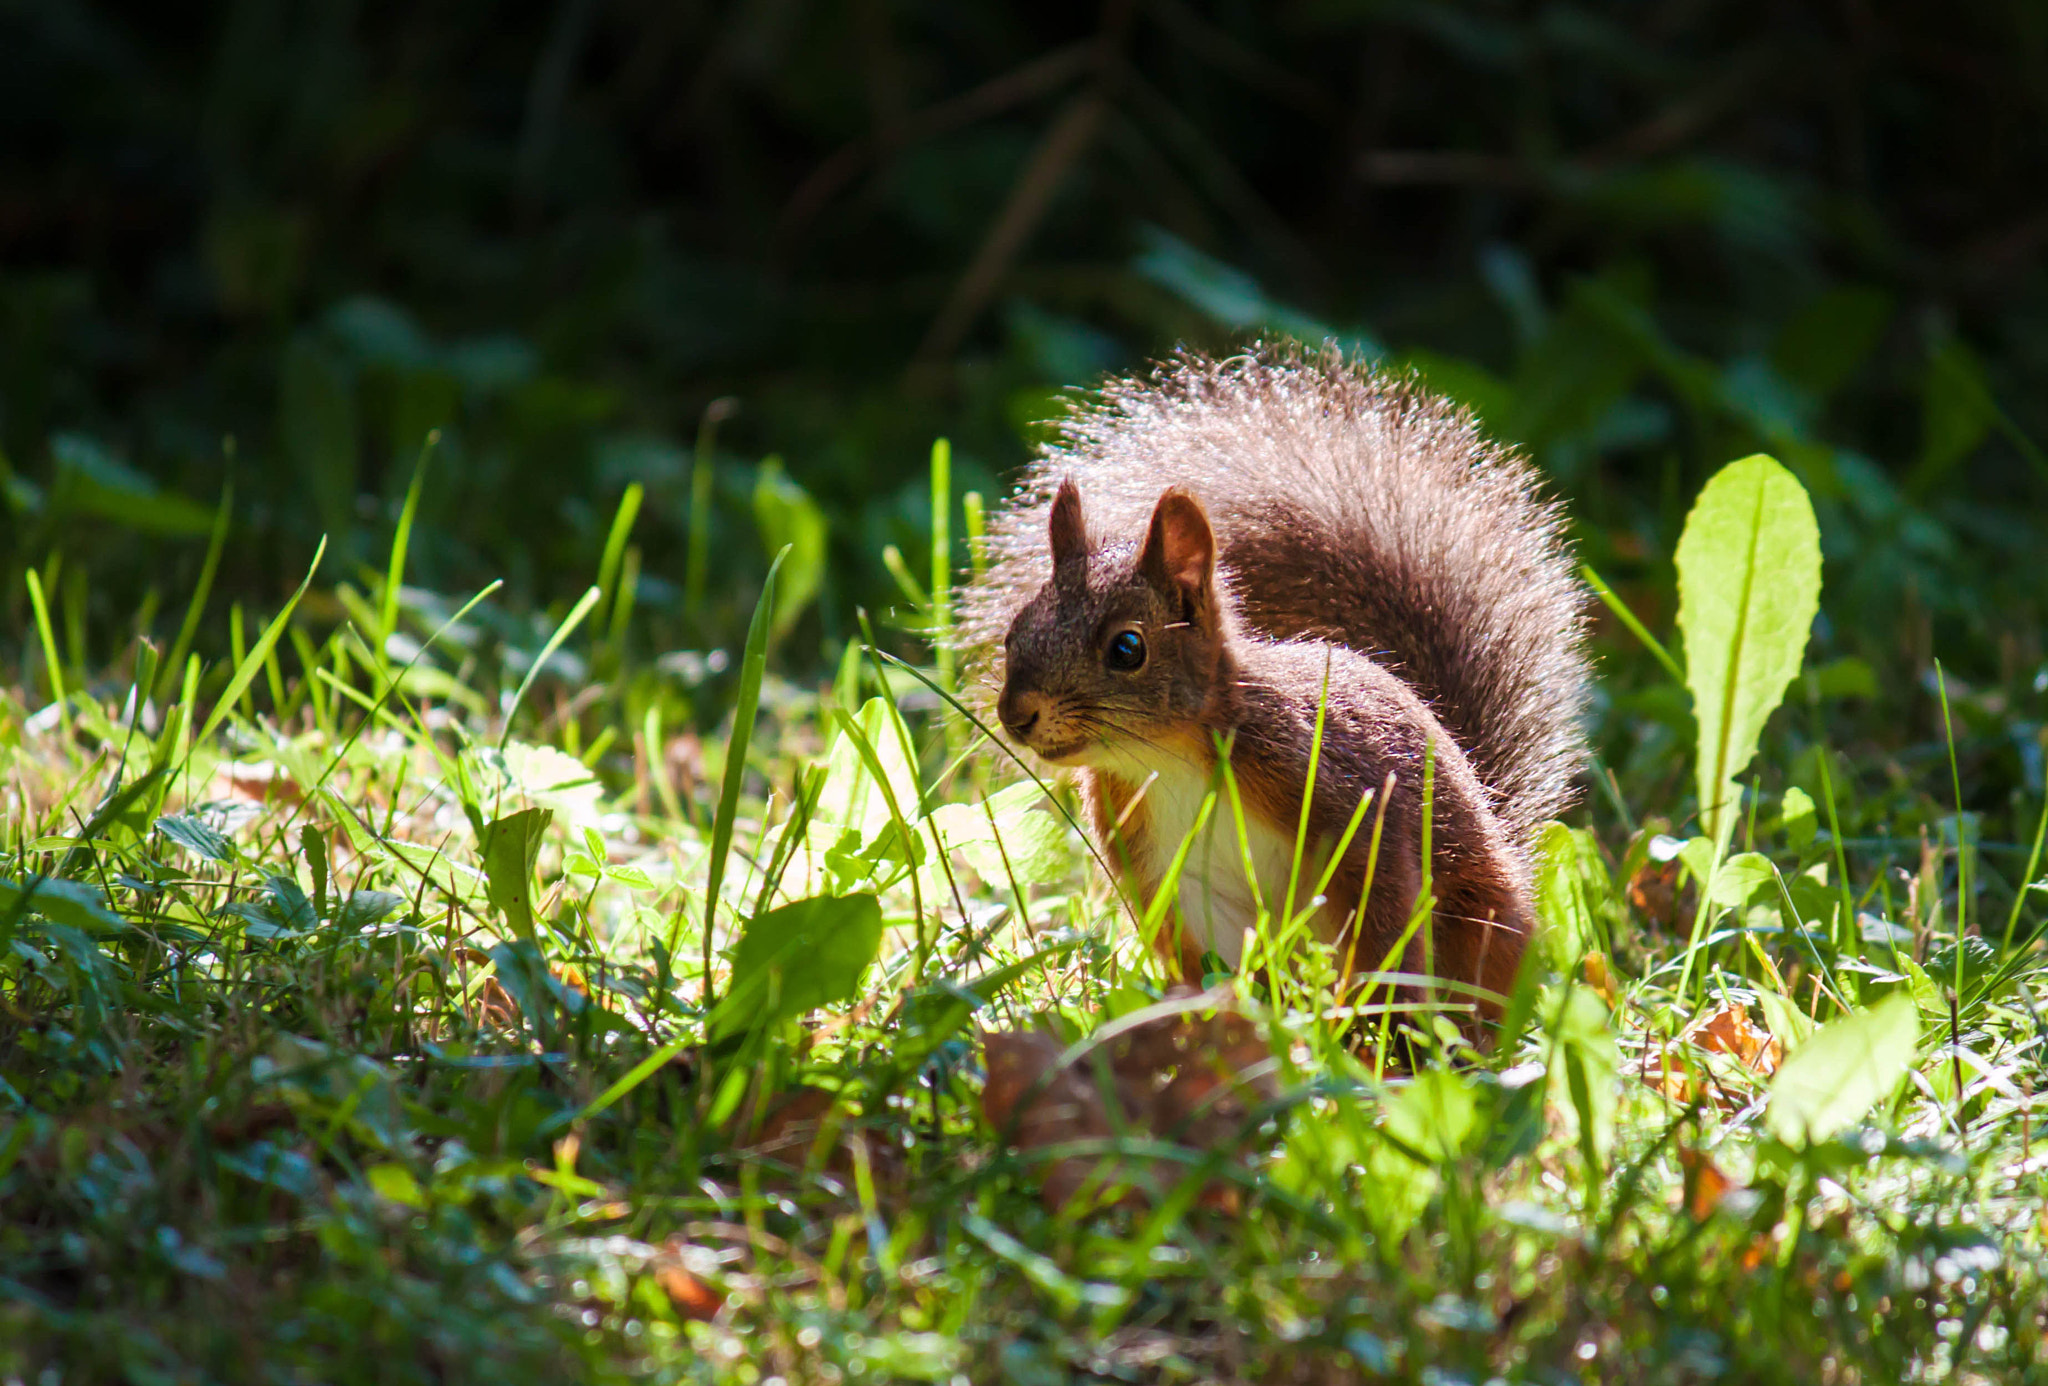 Photograph Squirrel in contre-jour by Tatiana K on 500px